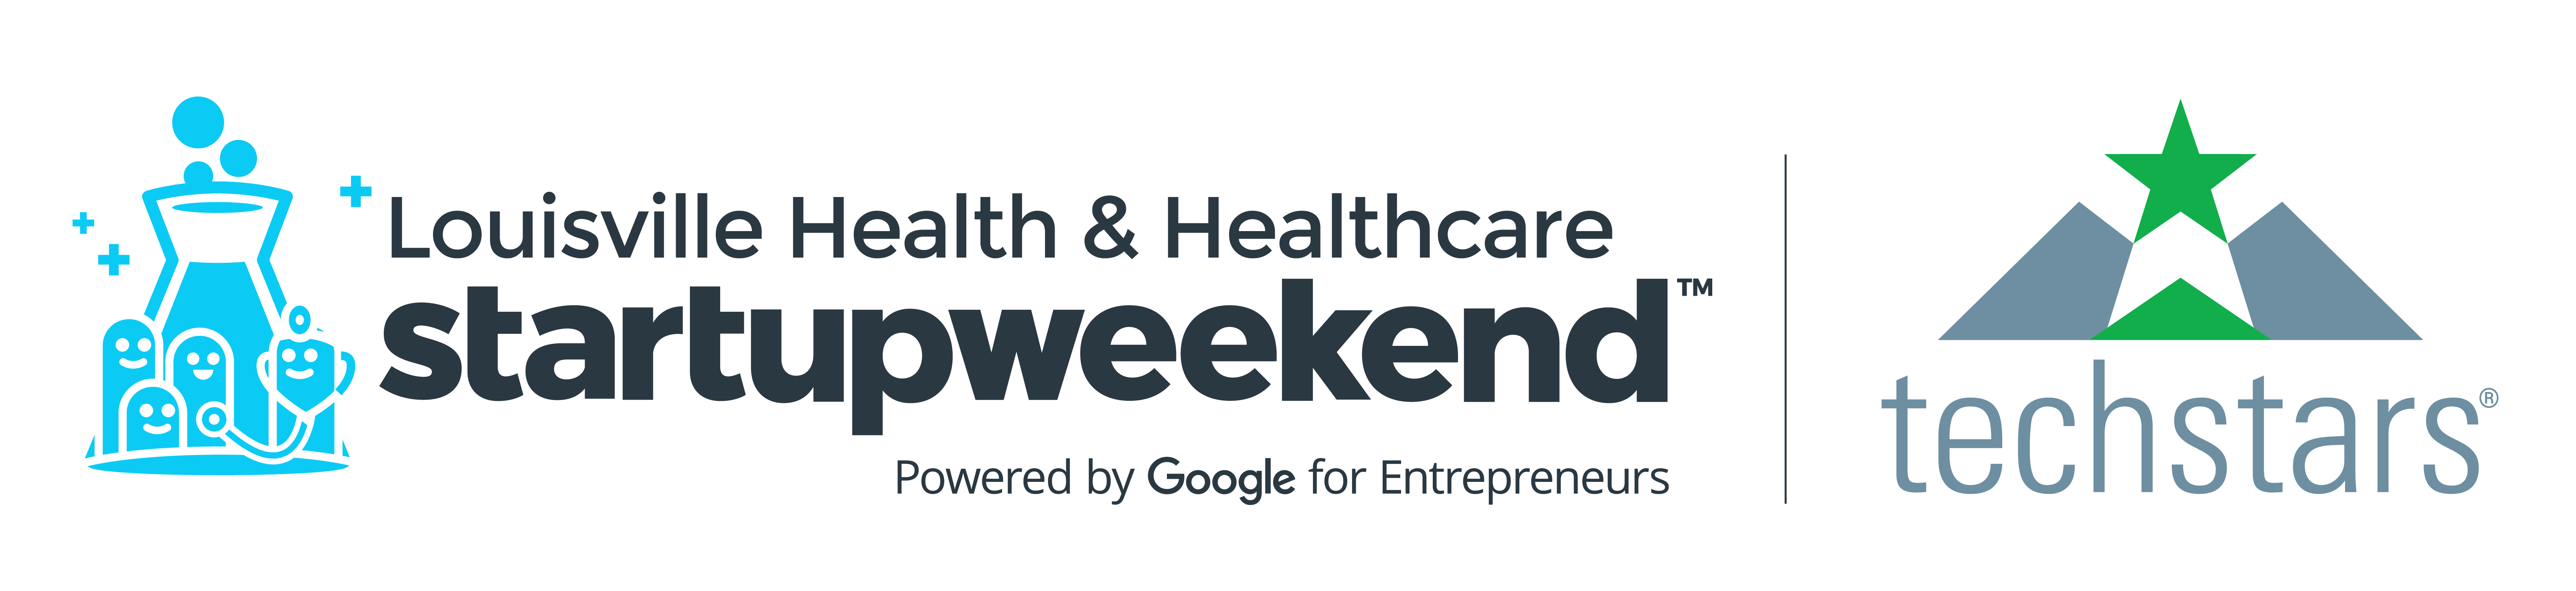 Startup Weekend Louisville Health and Healthcare Edition Logo